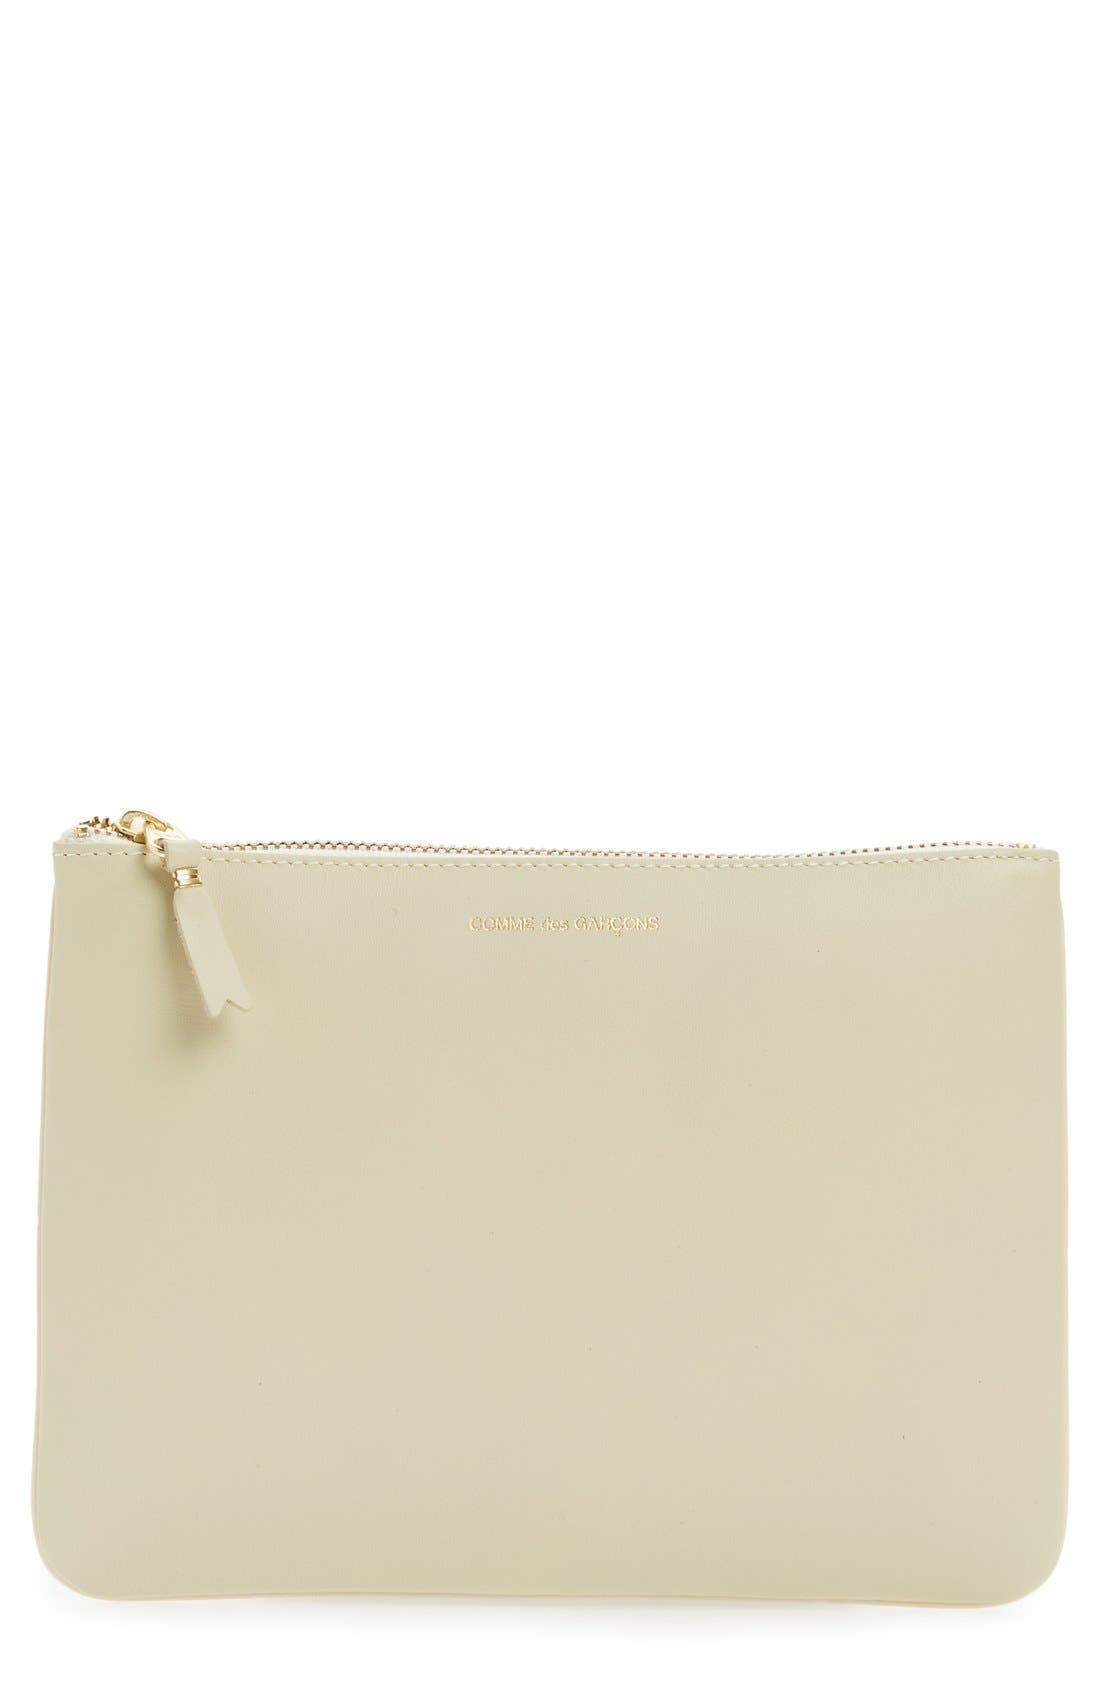 Medium Classic Leather Zip-Up Pouch,                         Main,                         color, Off White